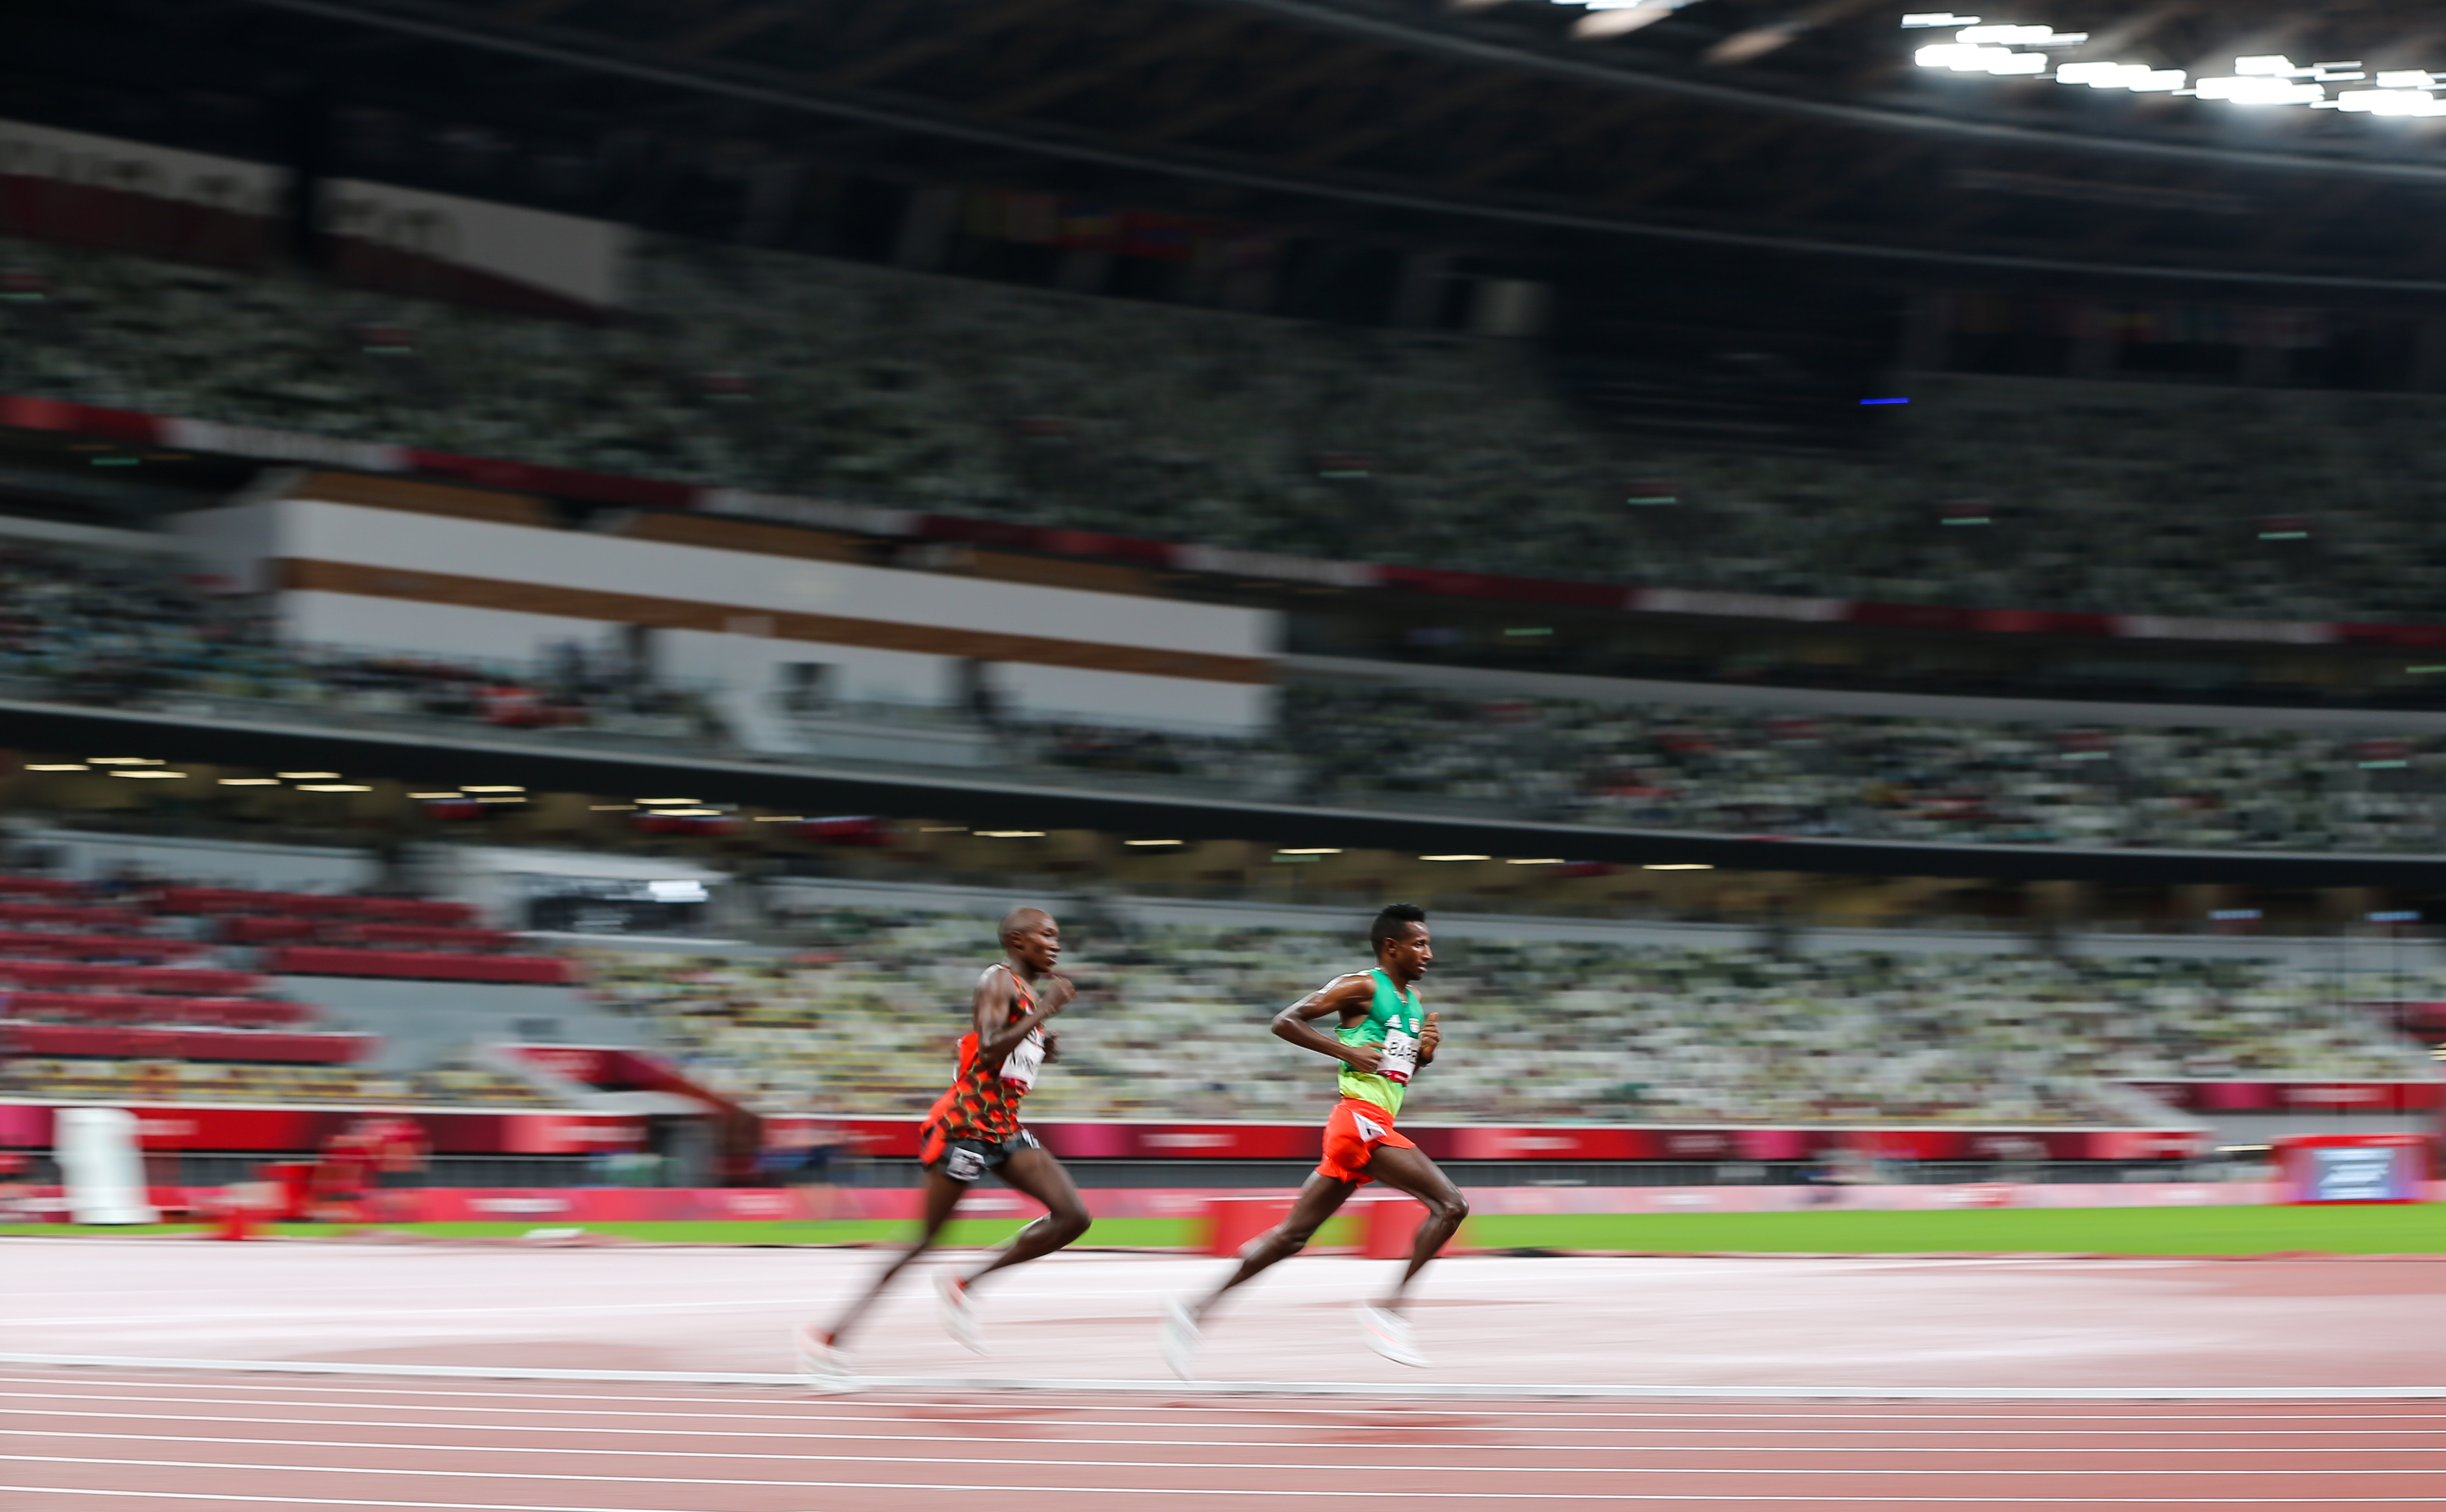 All the best images from the Olympic Games